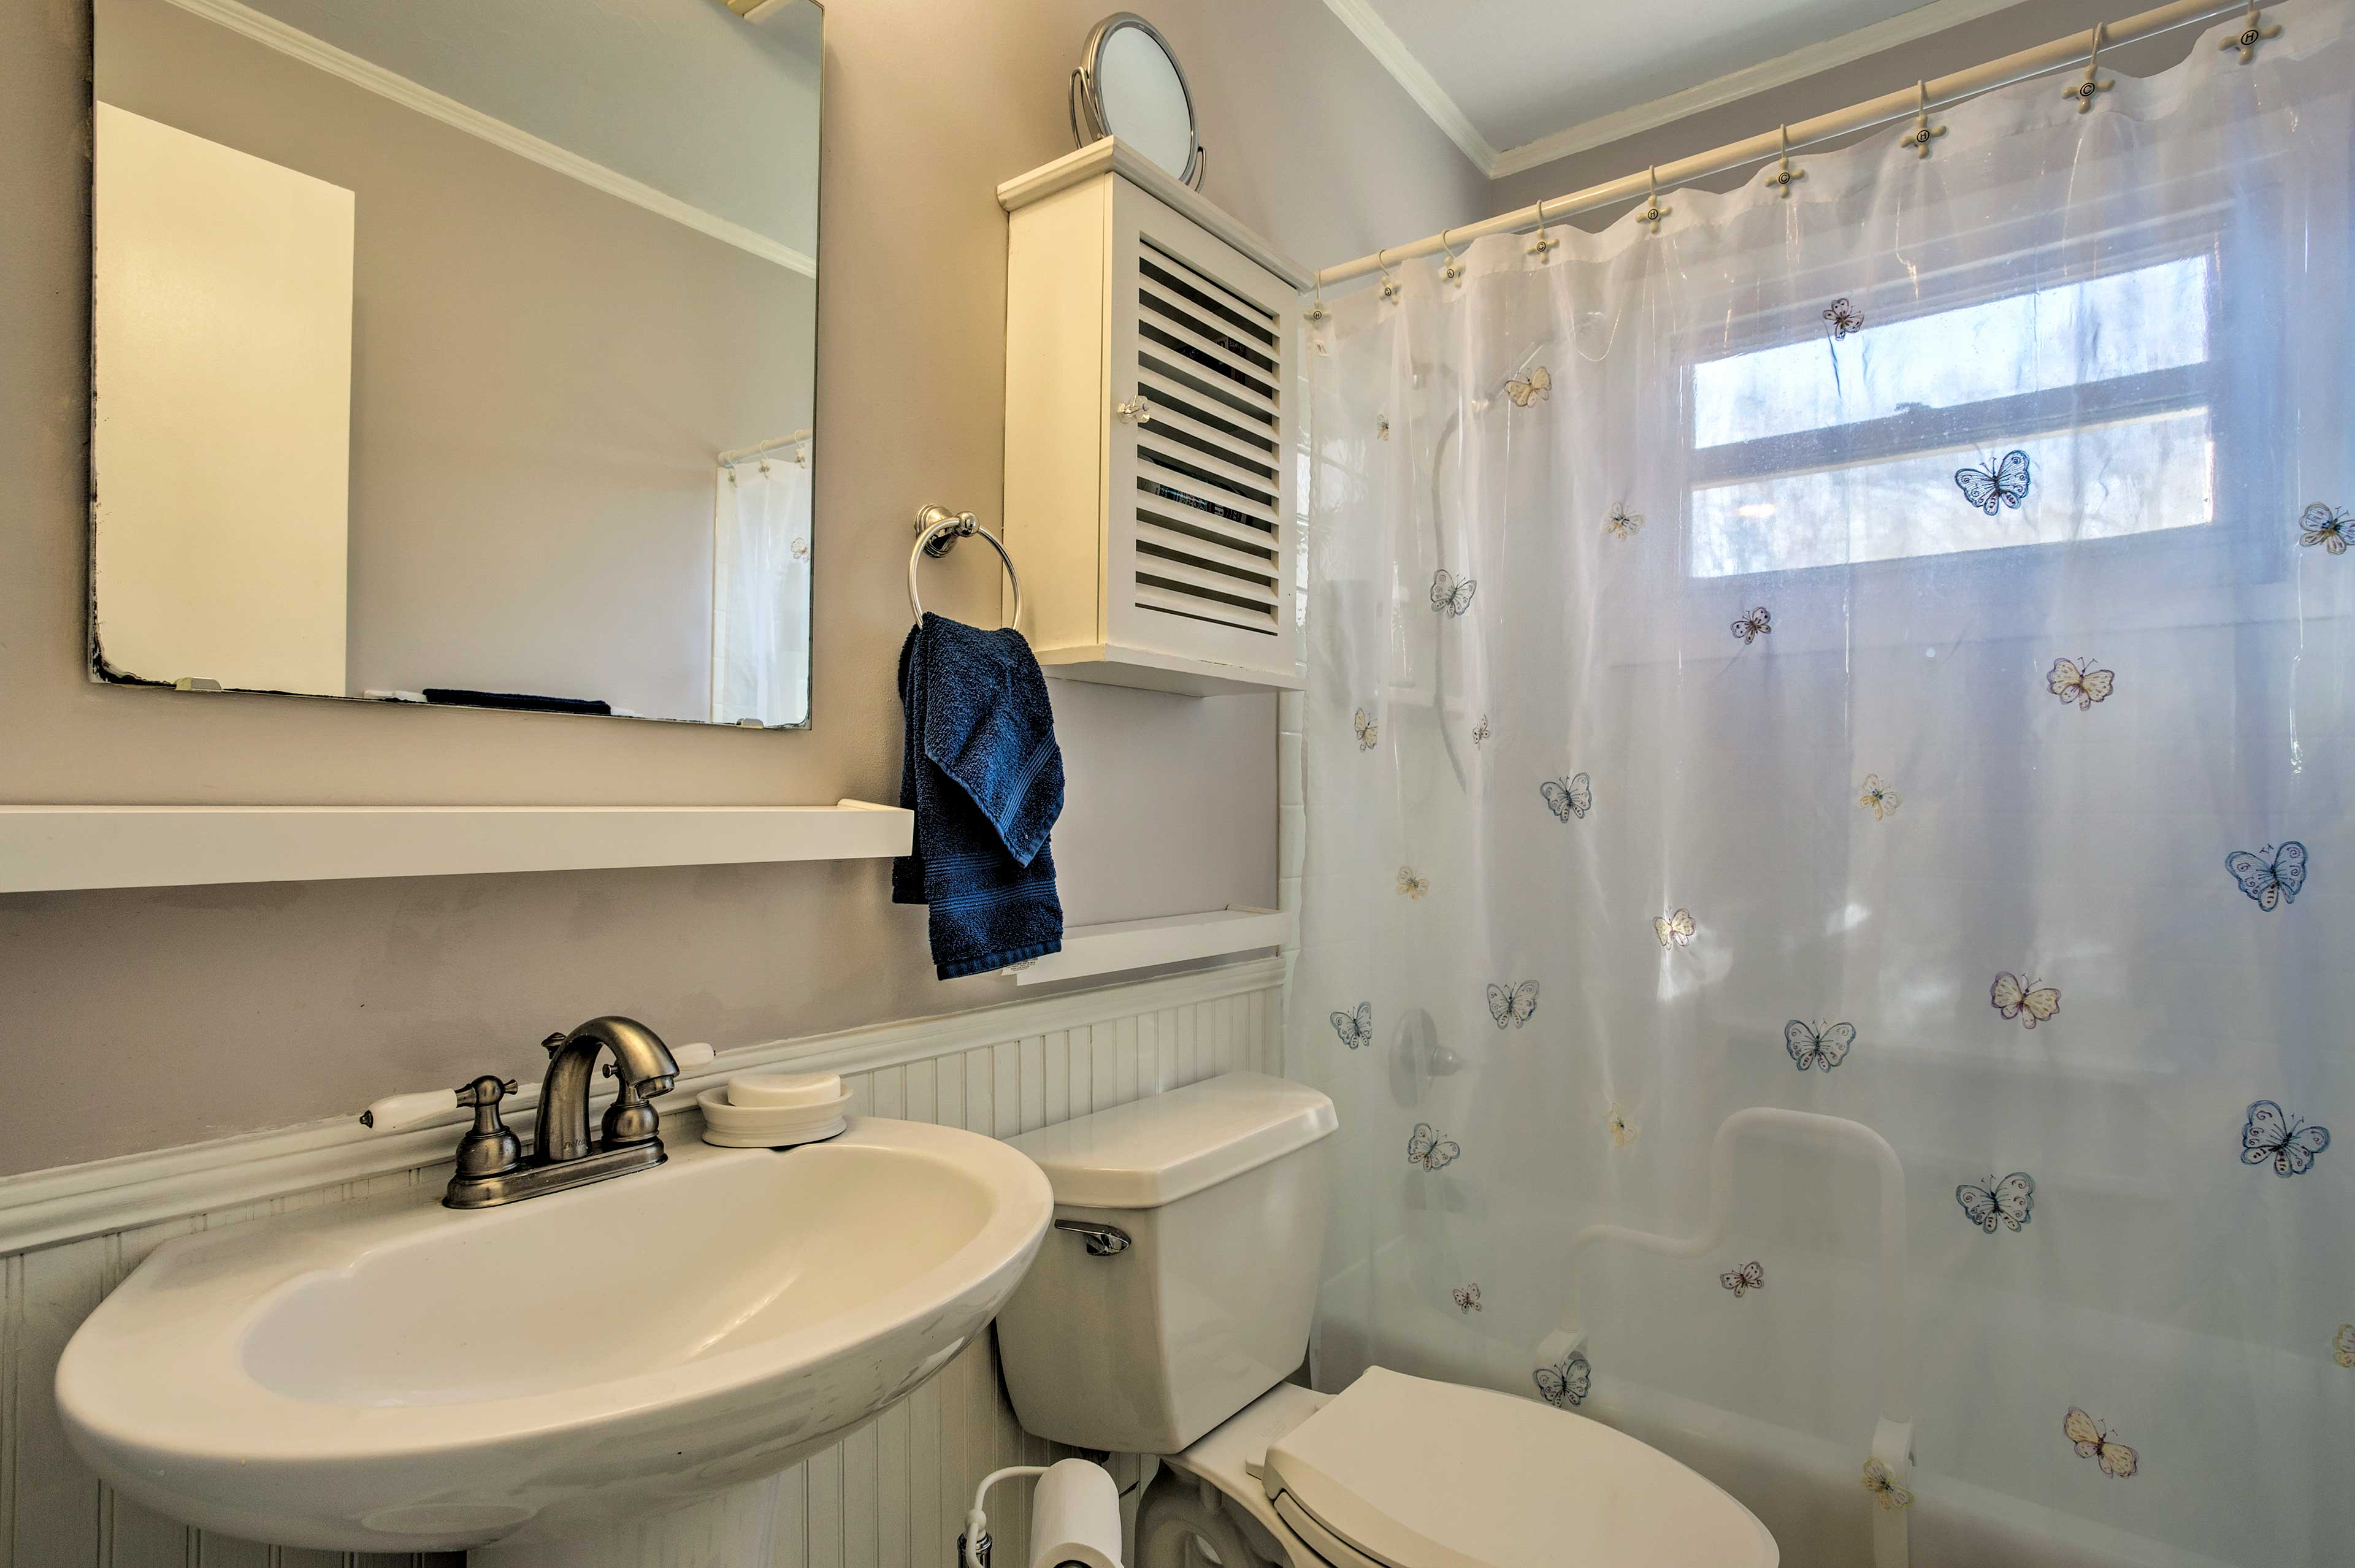 Rise and shine with a refreshing shower in one of 2 full bathrooms.